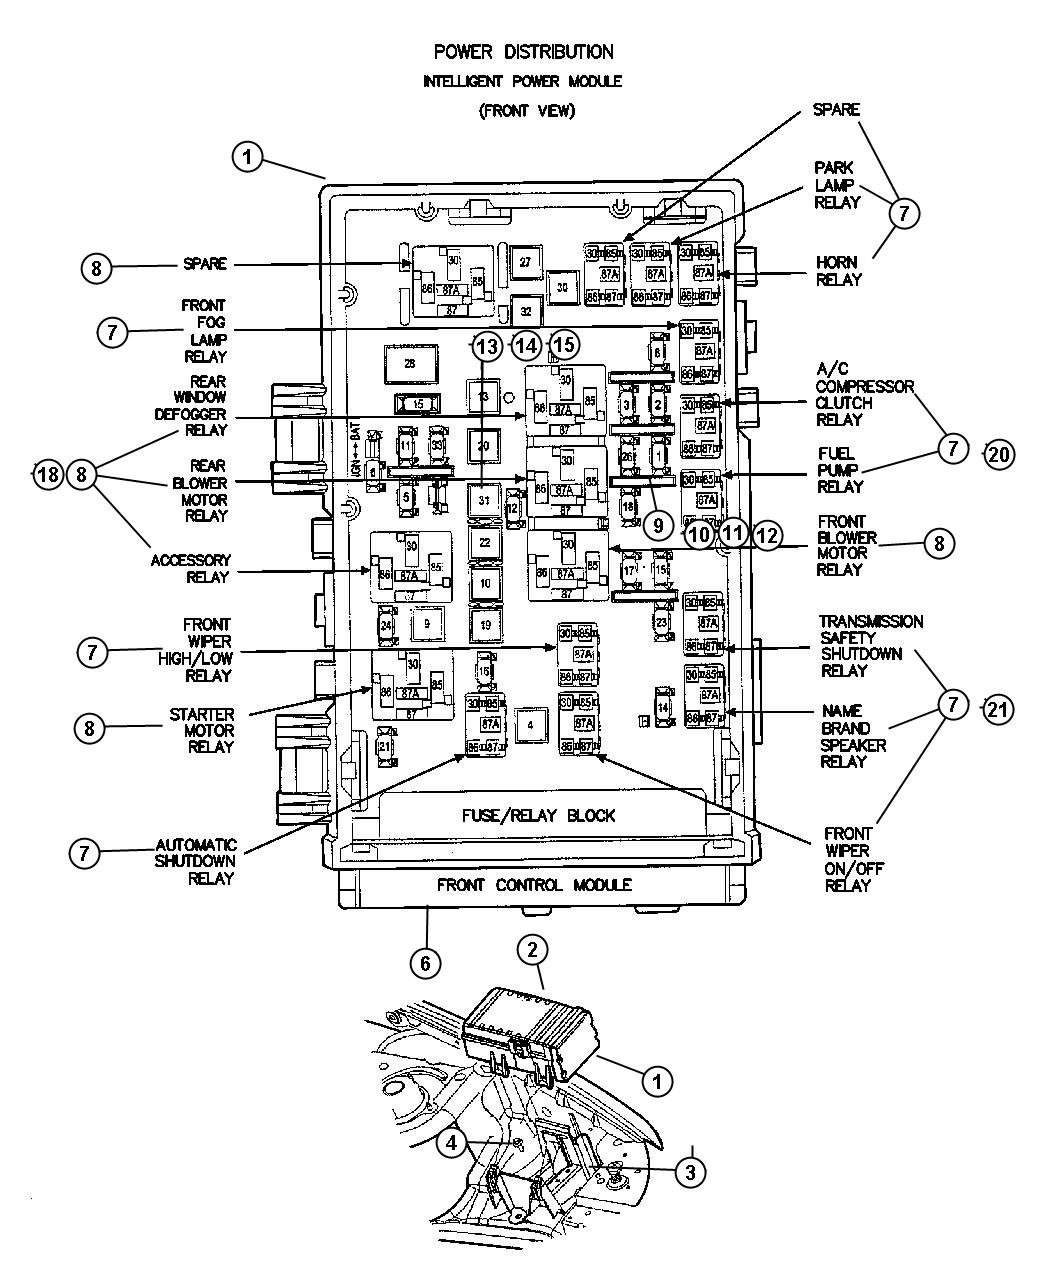 29 2007 dodge nitro fuse box diagram